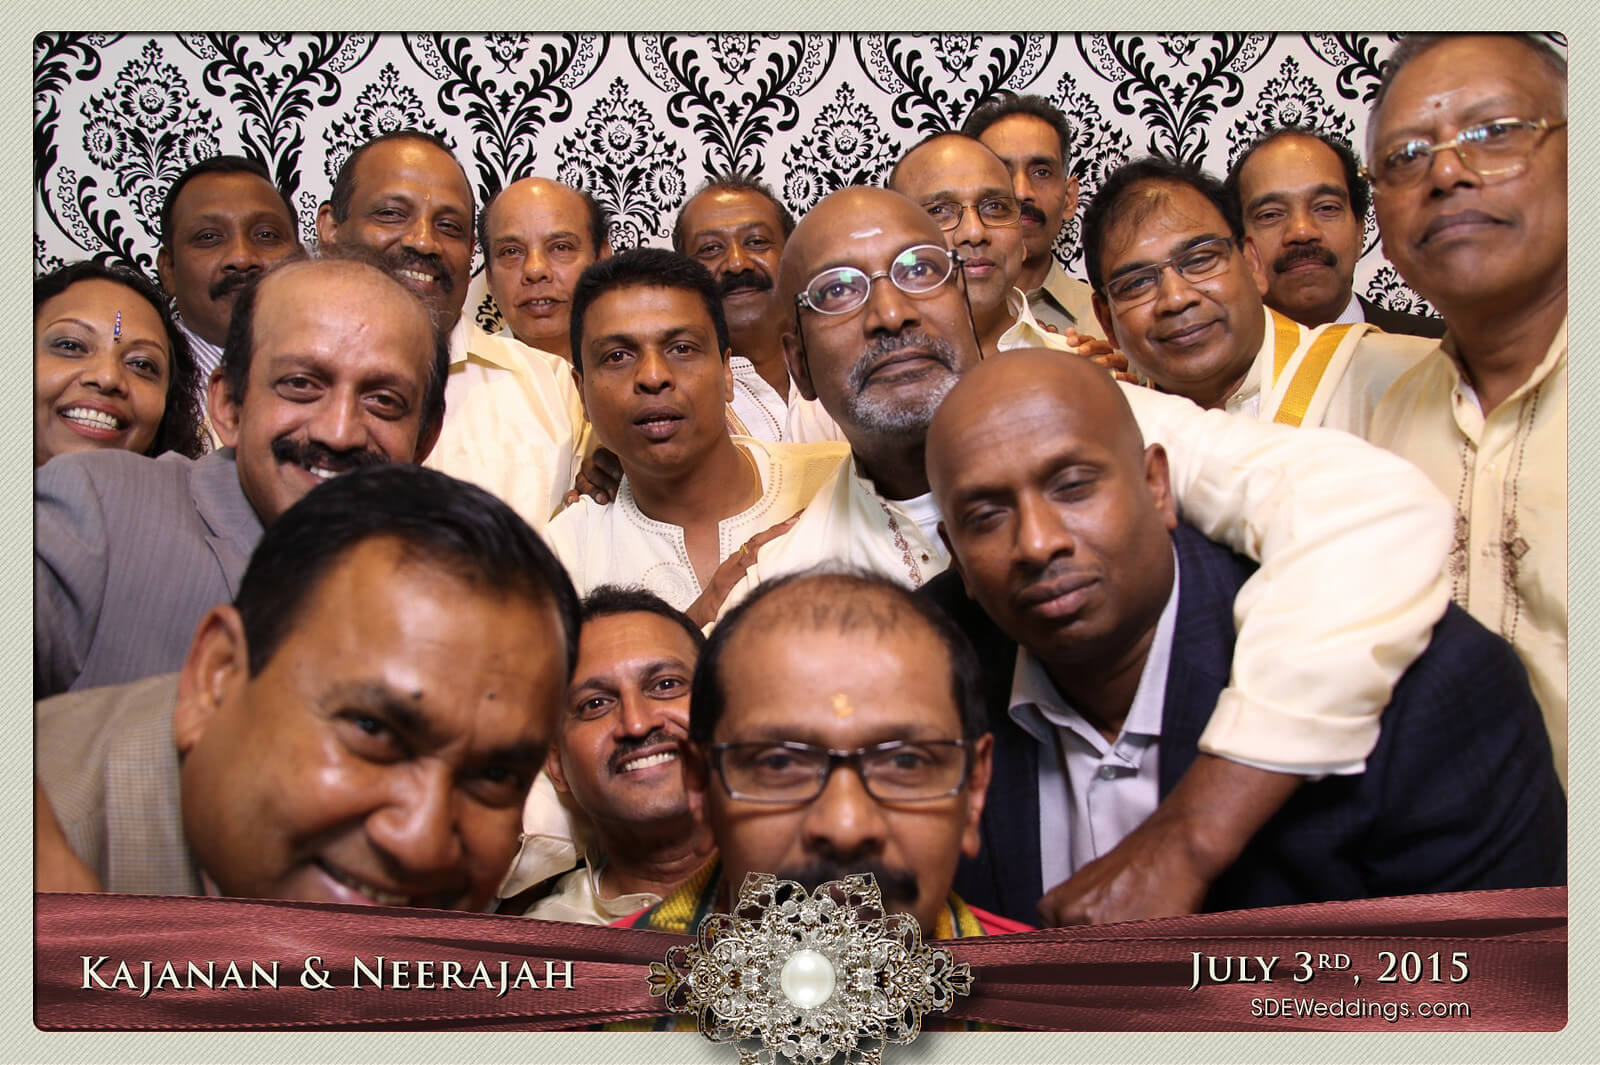 Toronto Scarborough Convention Centre Hindu Wedding Photo Booth Rental 11